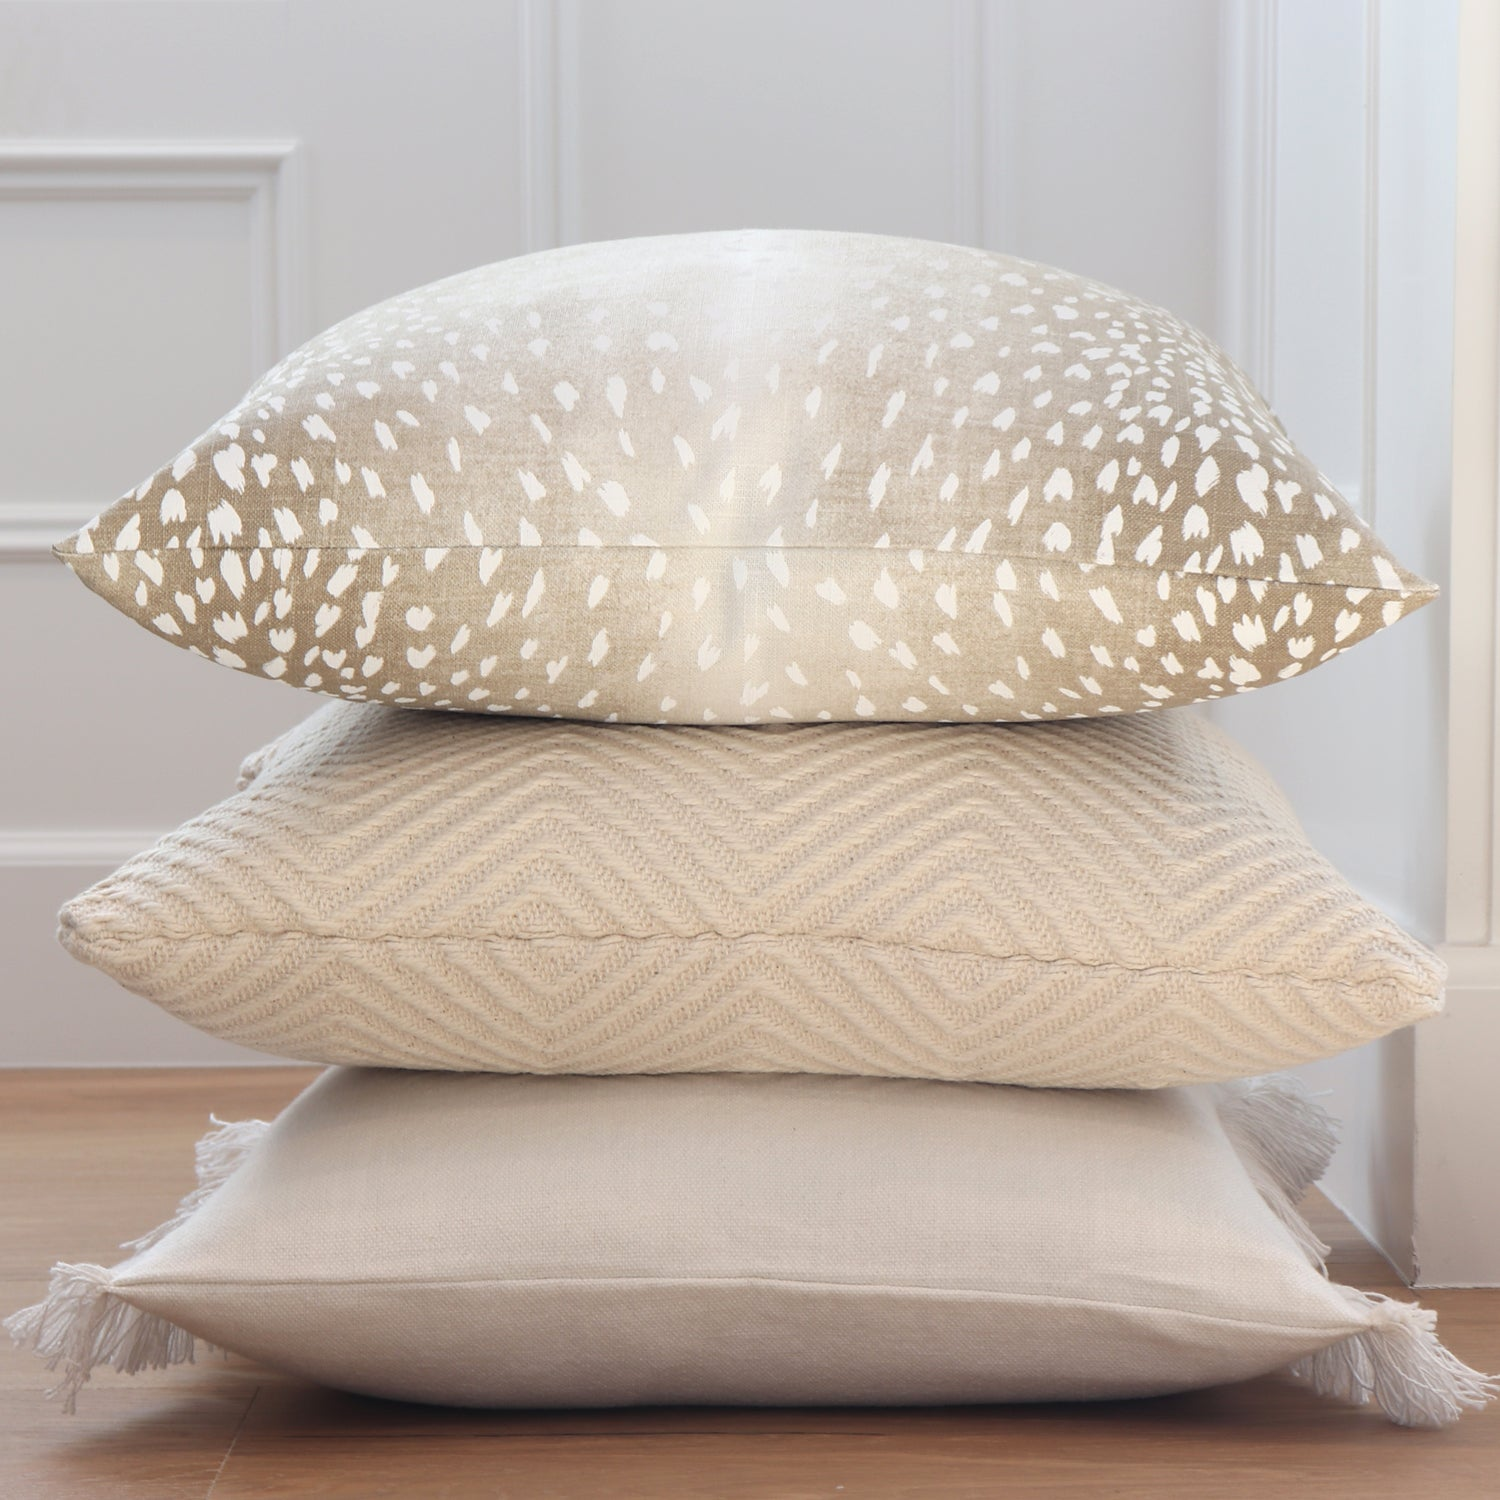 Fawn Animal Print Beige And White Throw Pillow Chloe Olive